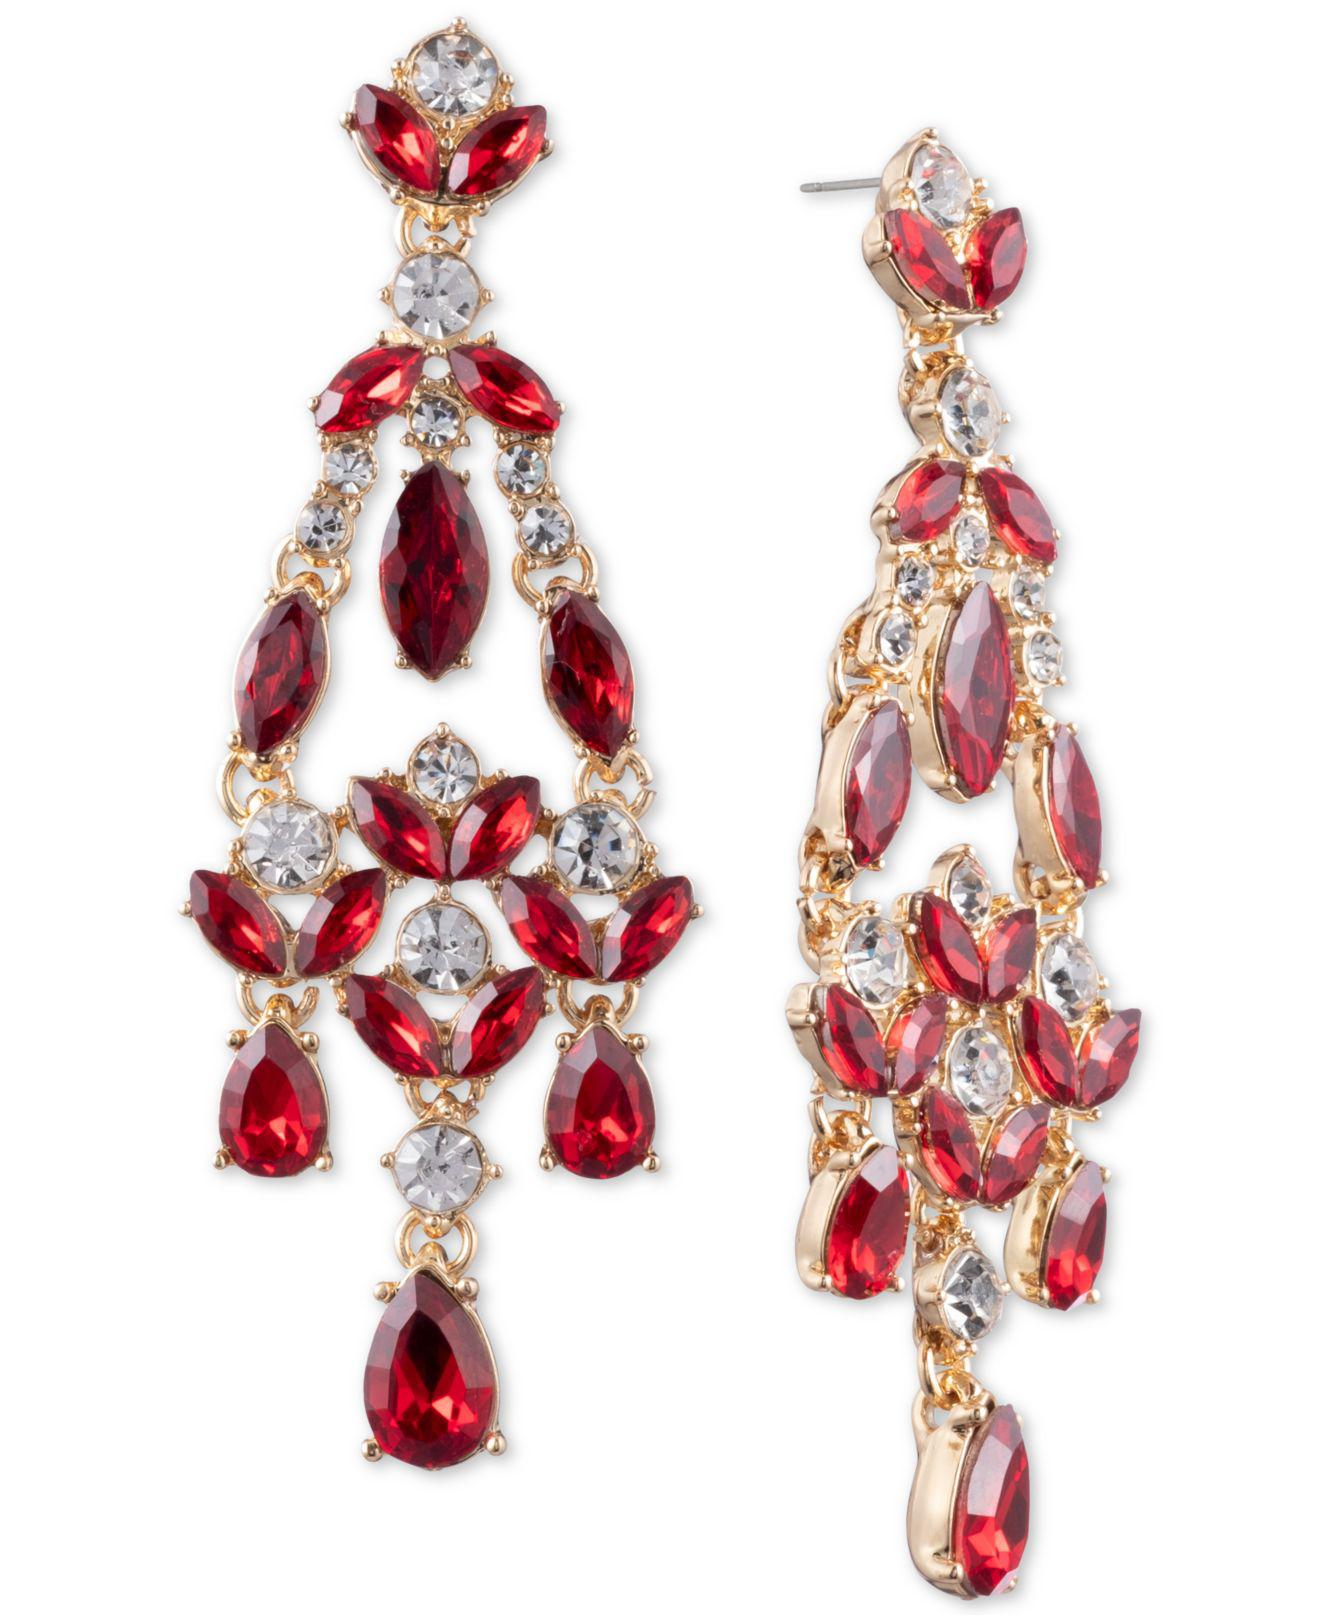 bae76d392d1da Anne Klein Gold-tone Stone And Crystal Chandelier Earrings in ...